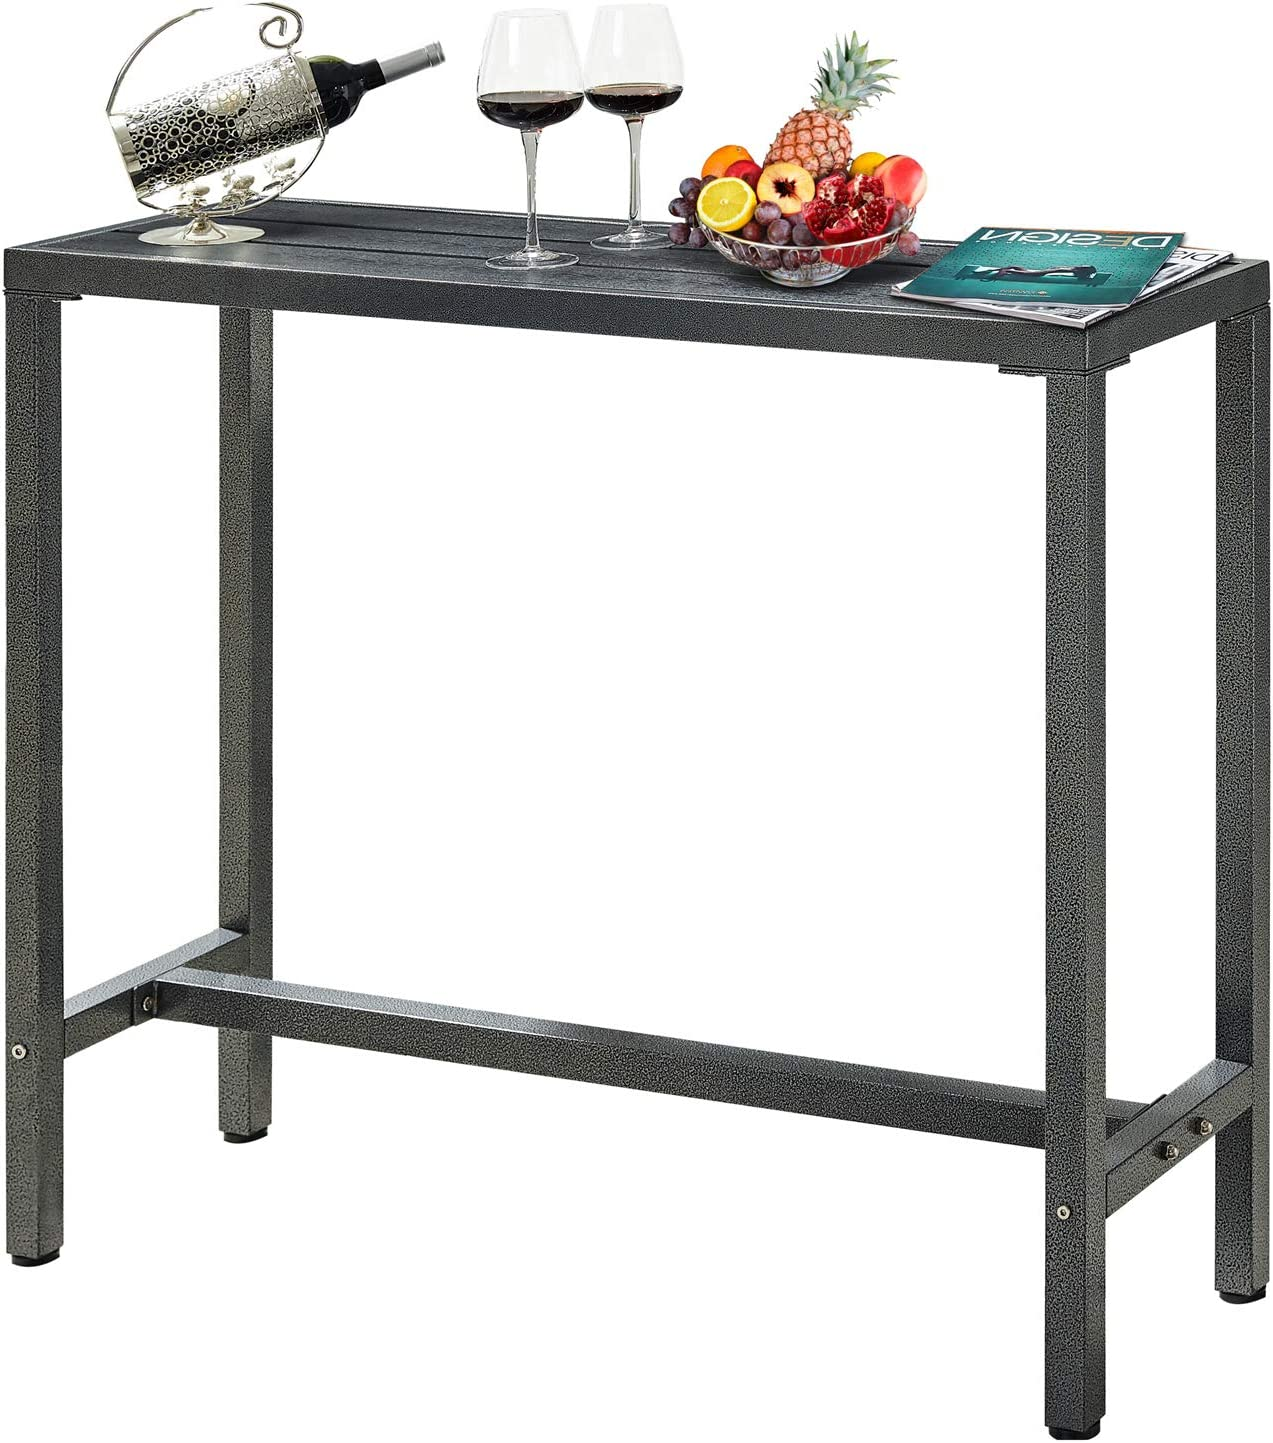 Pub Height Dining Table Bistro Patio, Outdoor Bar Top Dining Table